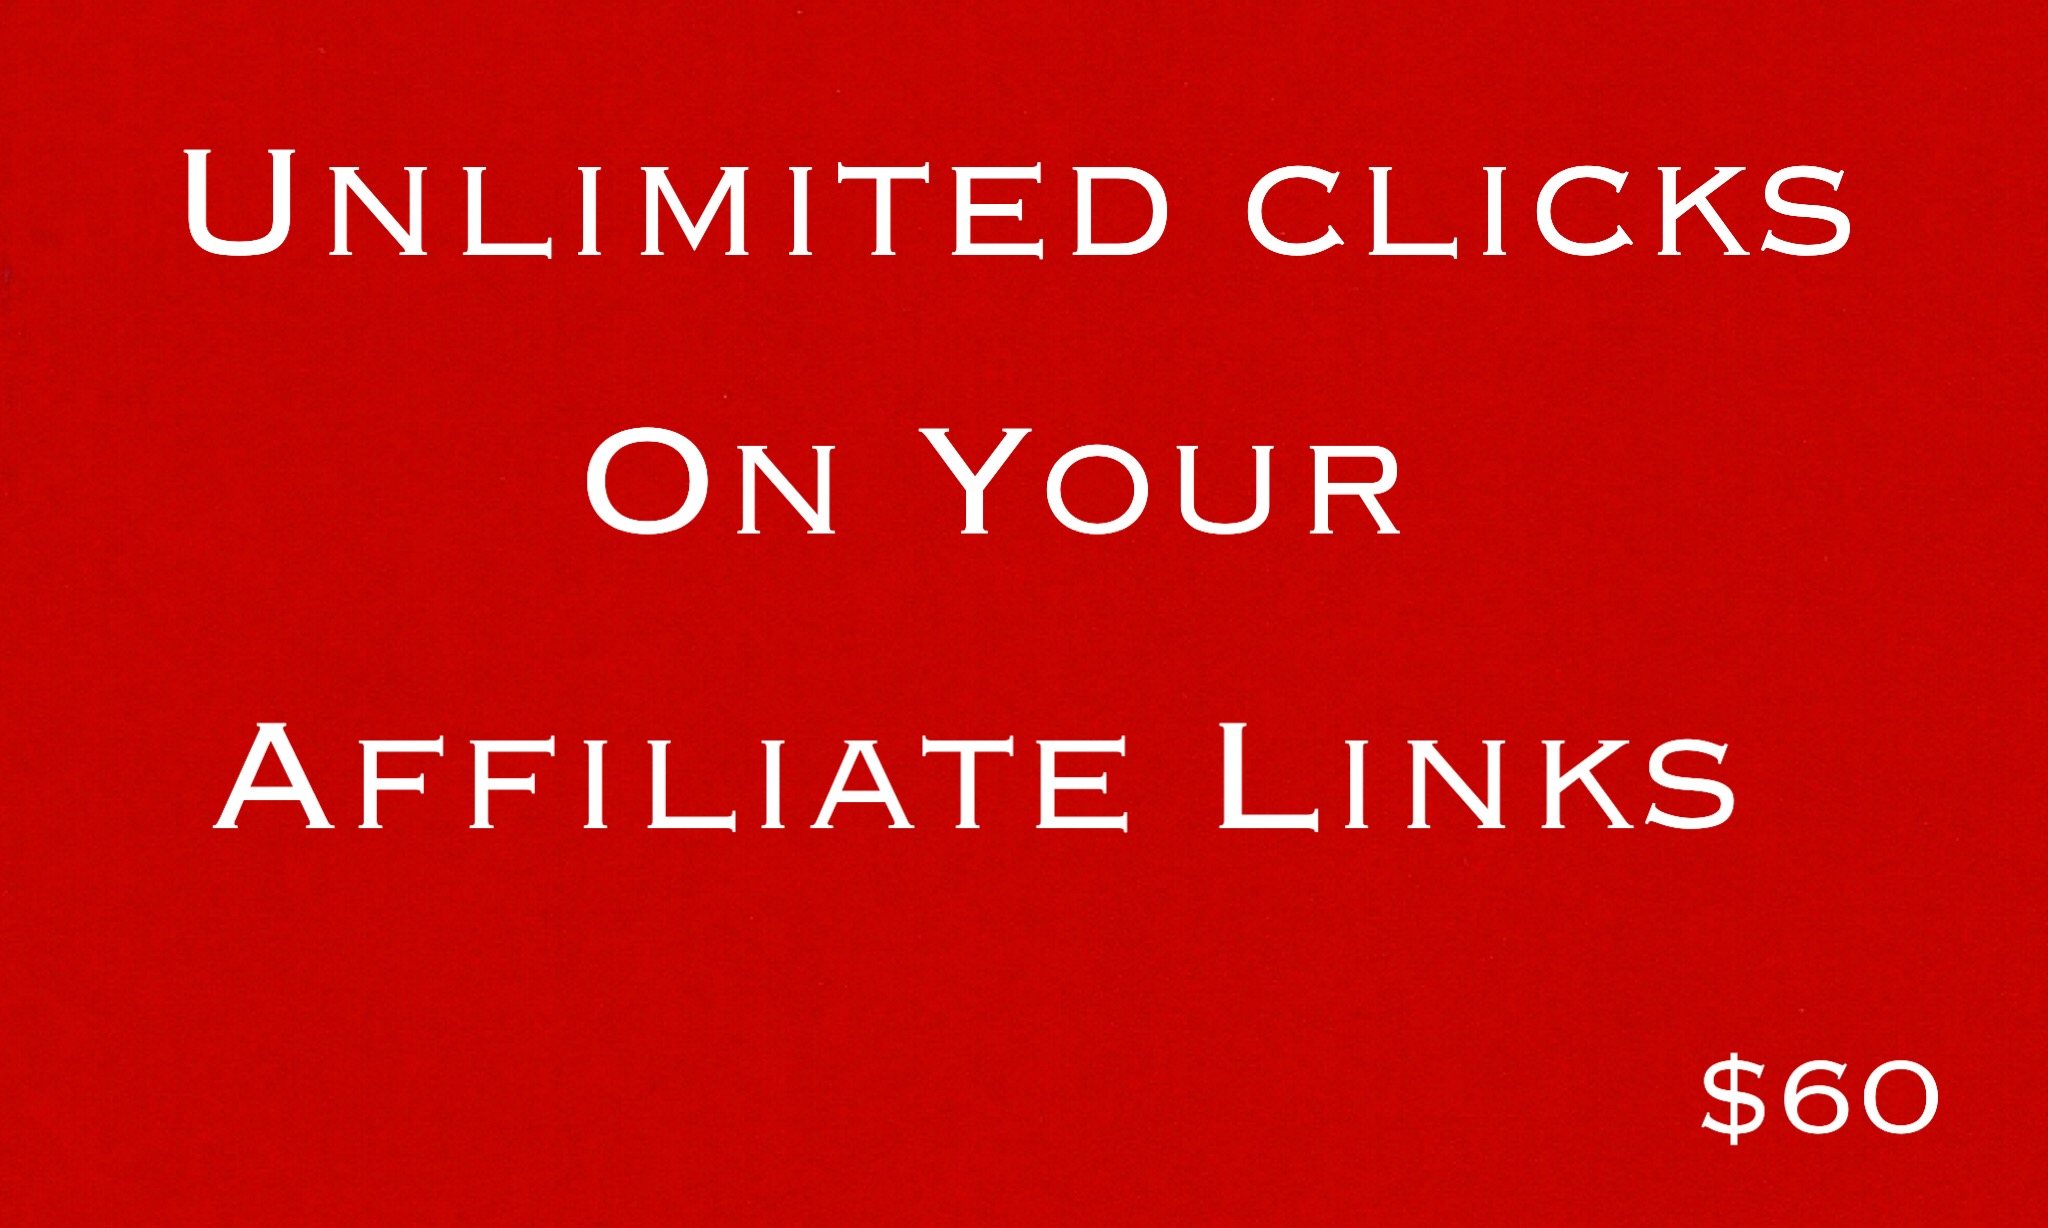 Get Unlimited Clicks On Affiliate Links